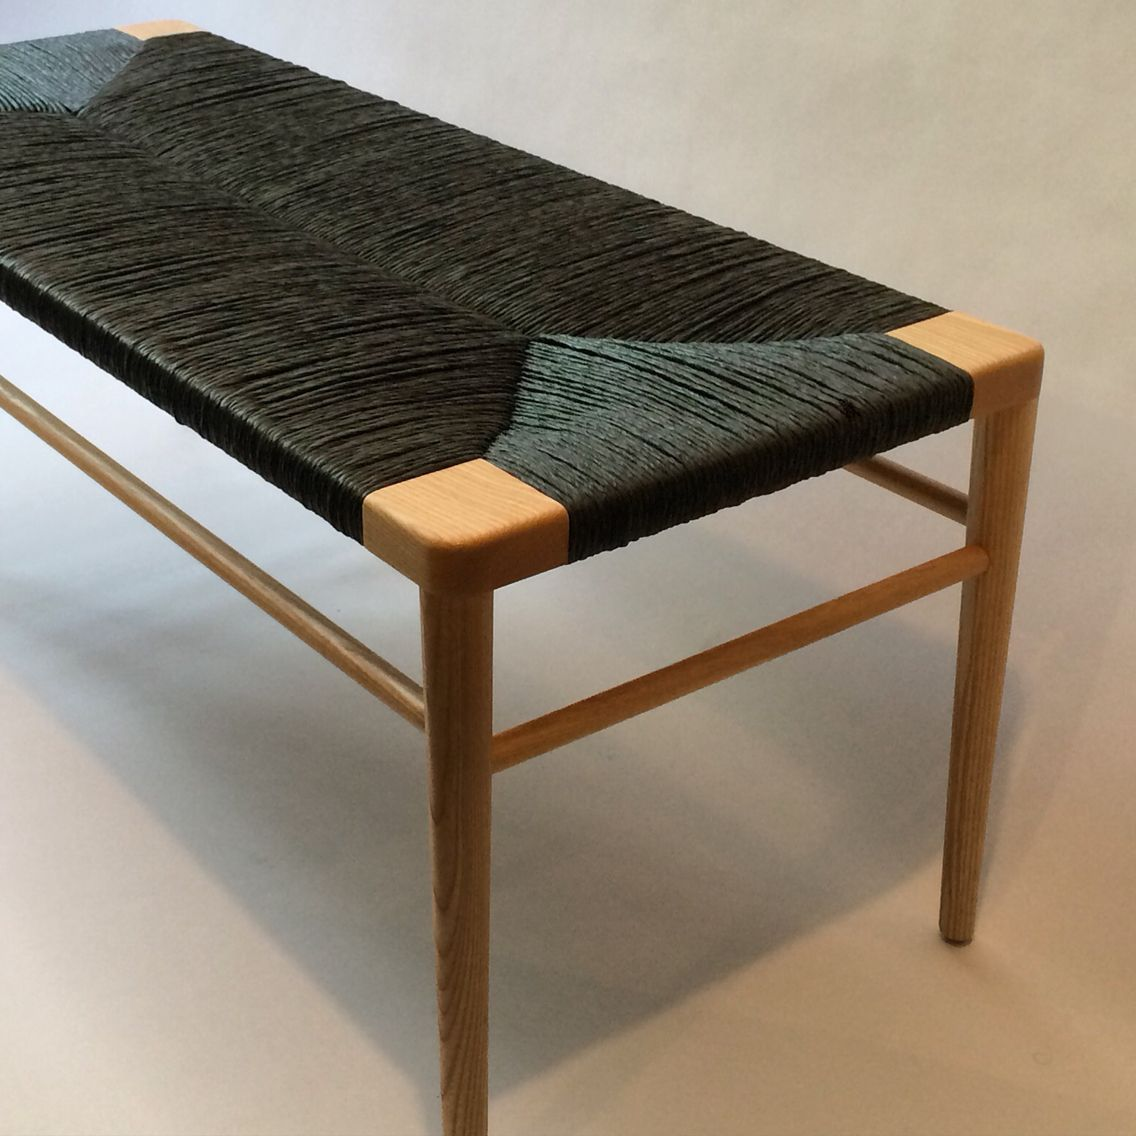 Fine Our Rlb44 Woven Rush Bench In Ash With Black Rush Inzonedesignstudio Interior Chair Design Inzonedesignstudiocom